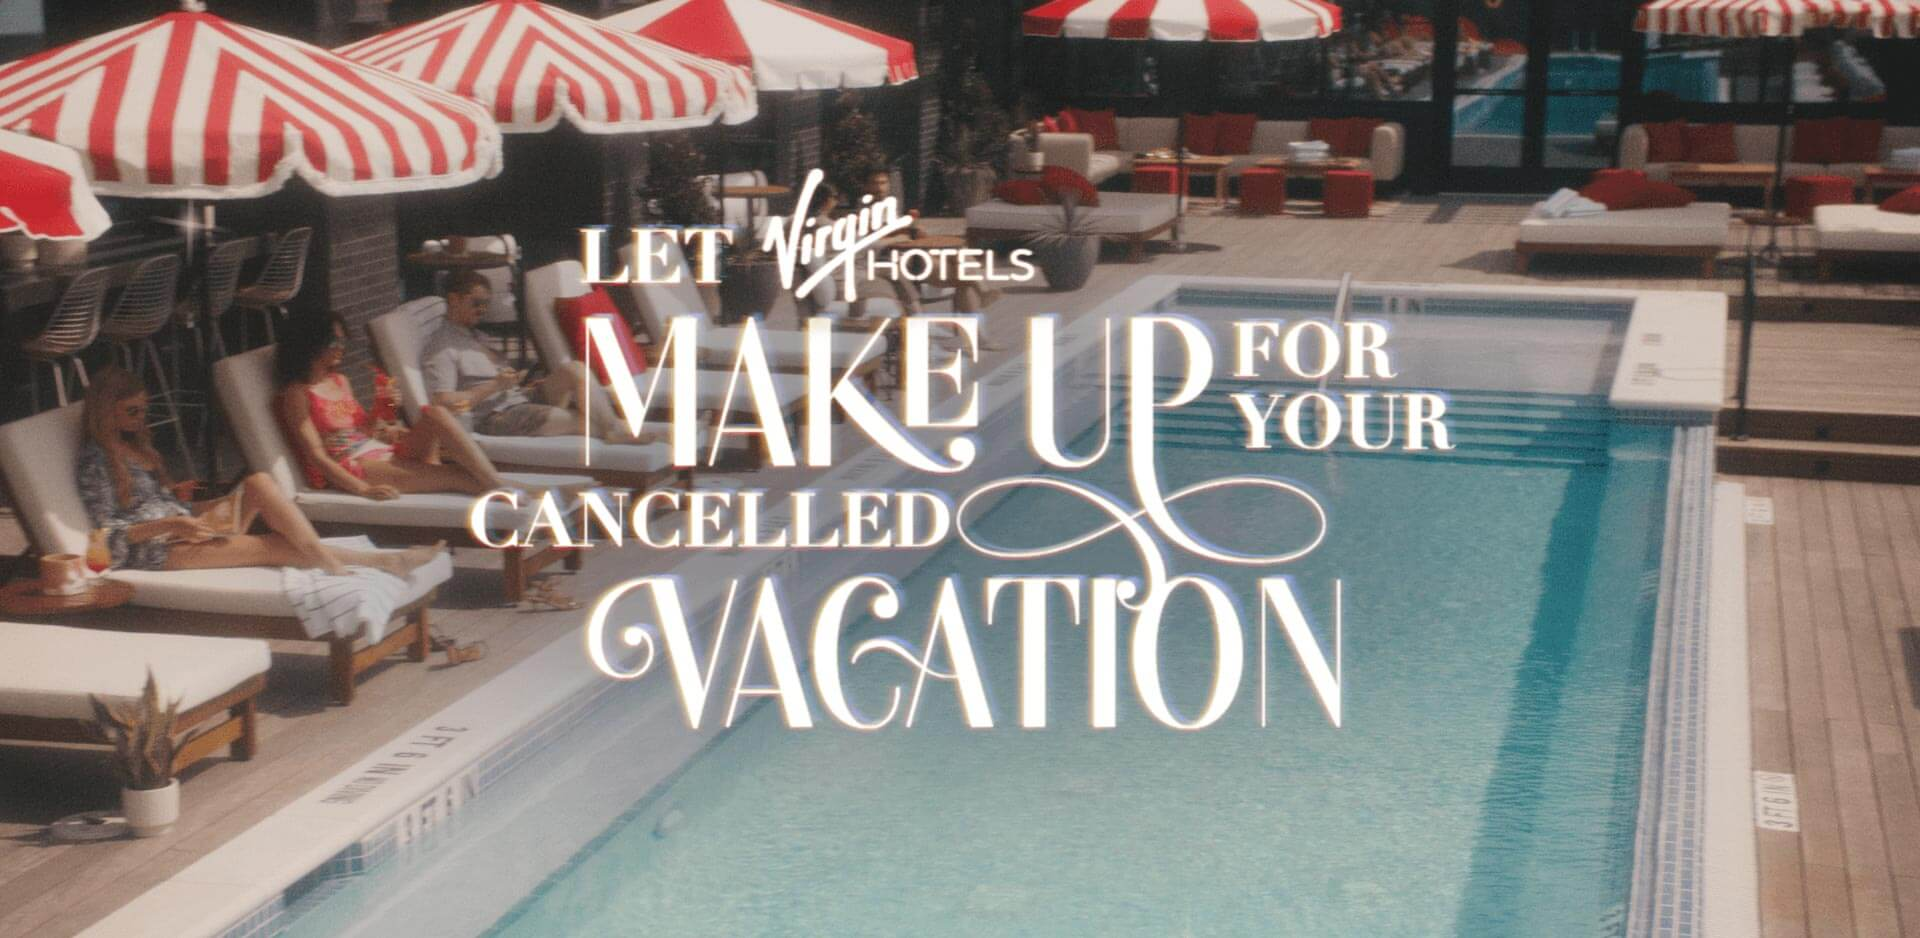 Let Virgin Hotels Make up for Your Cancelled Vacation